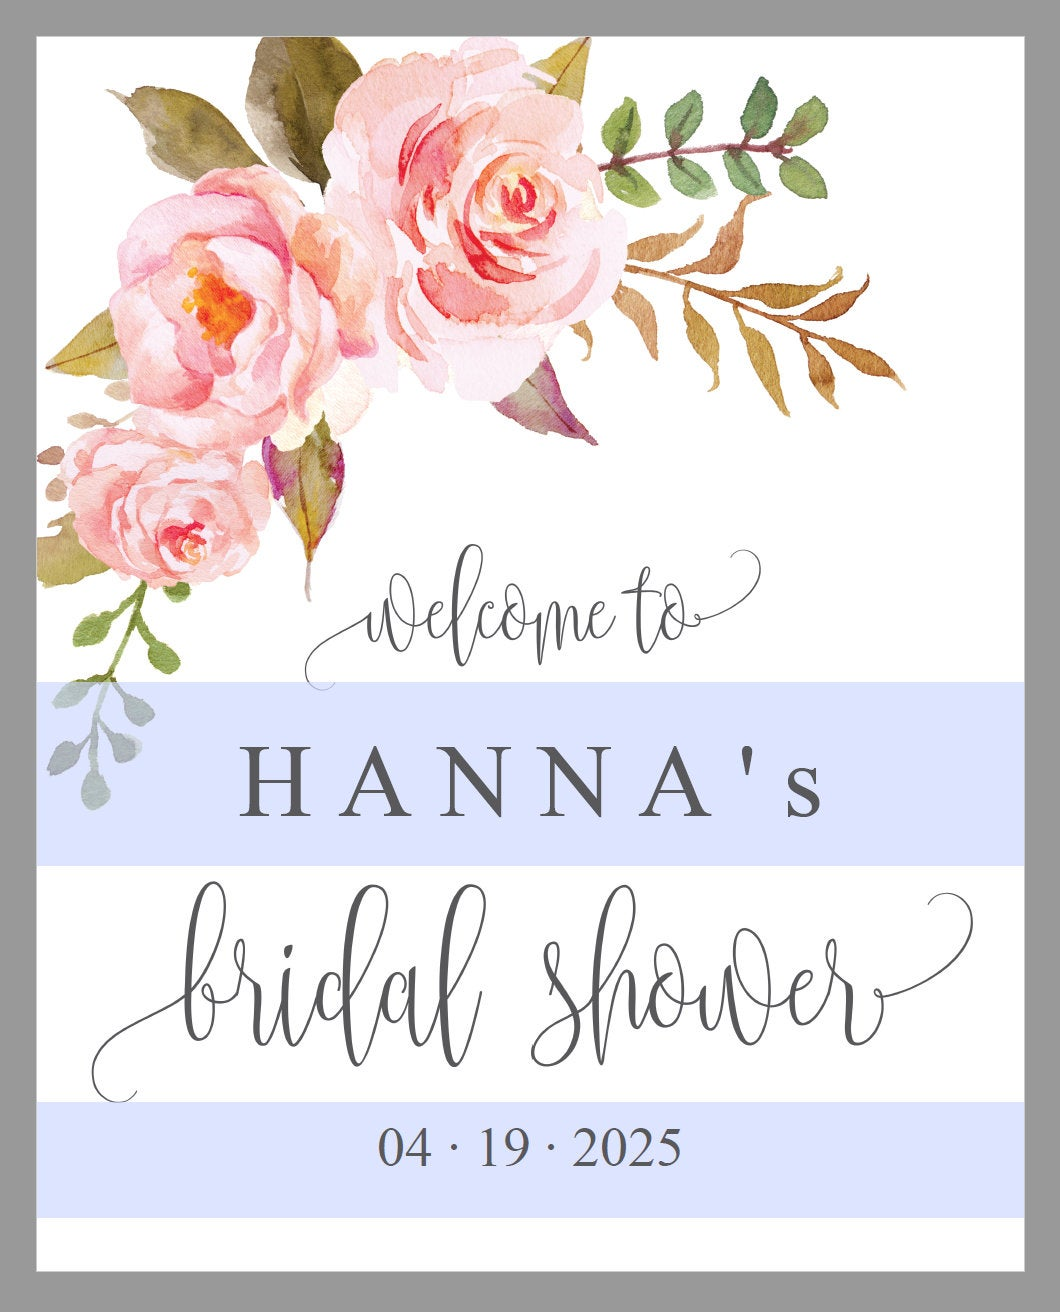 Floral Bridal Shower Welcome Sign Printable Template Editable Instant Download Wedding Décor  -HANNA